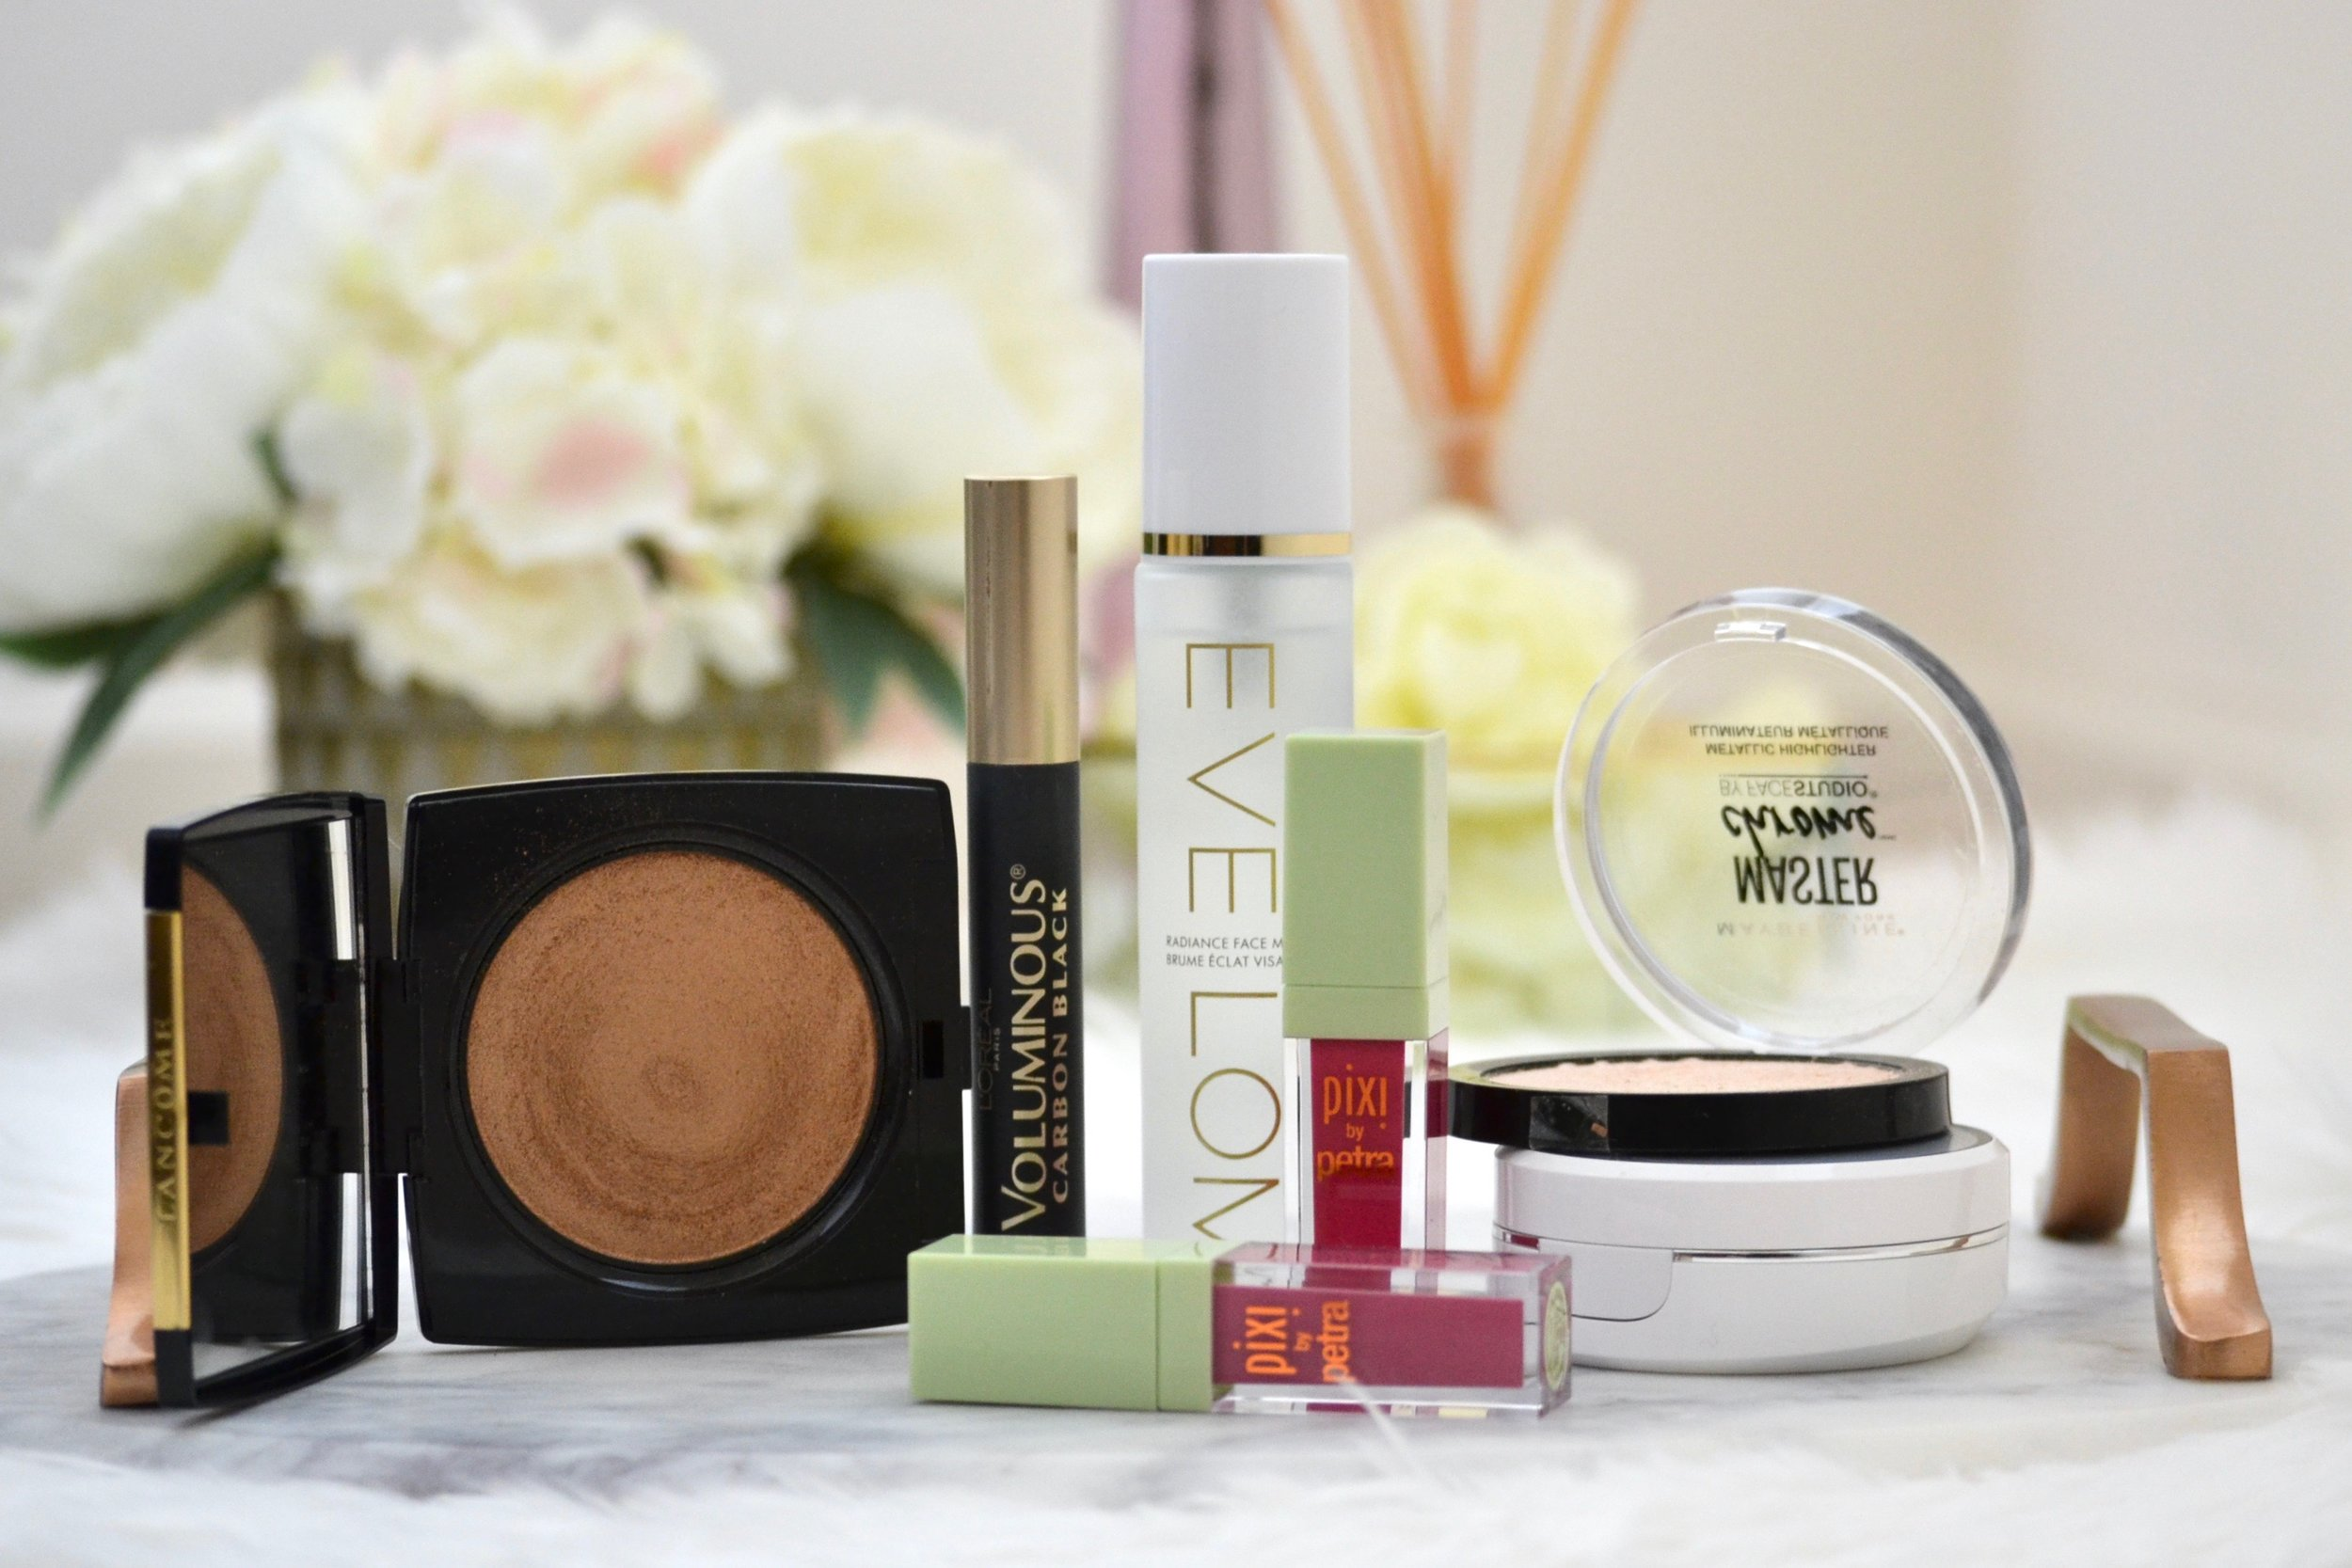 October was a great month for beauty products - from makeup to skincare and from drugstore to luxury. Check out what the best makeup and skincare products of October were! #makeup #skincare #drugstoremakeup #luxurymakeup #bestmakeup